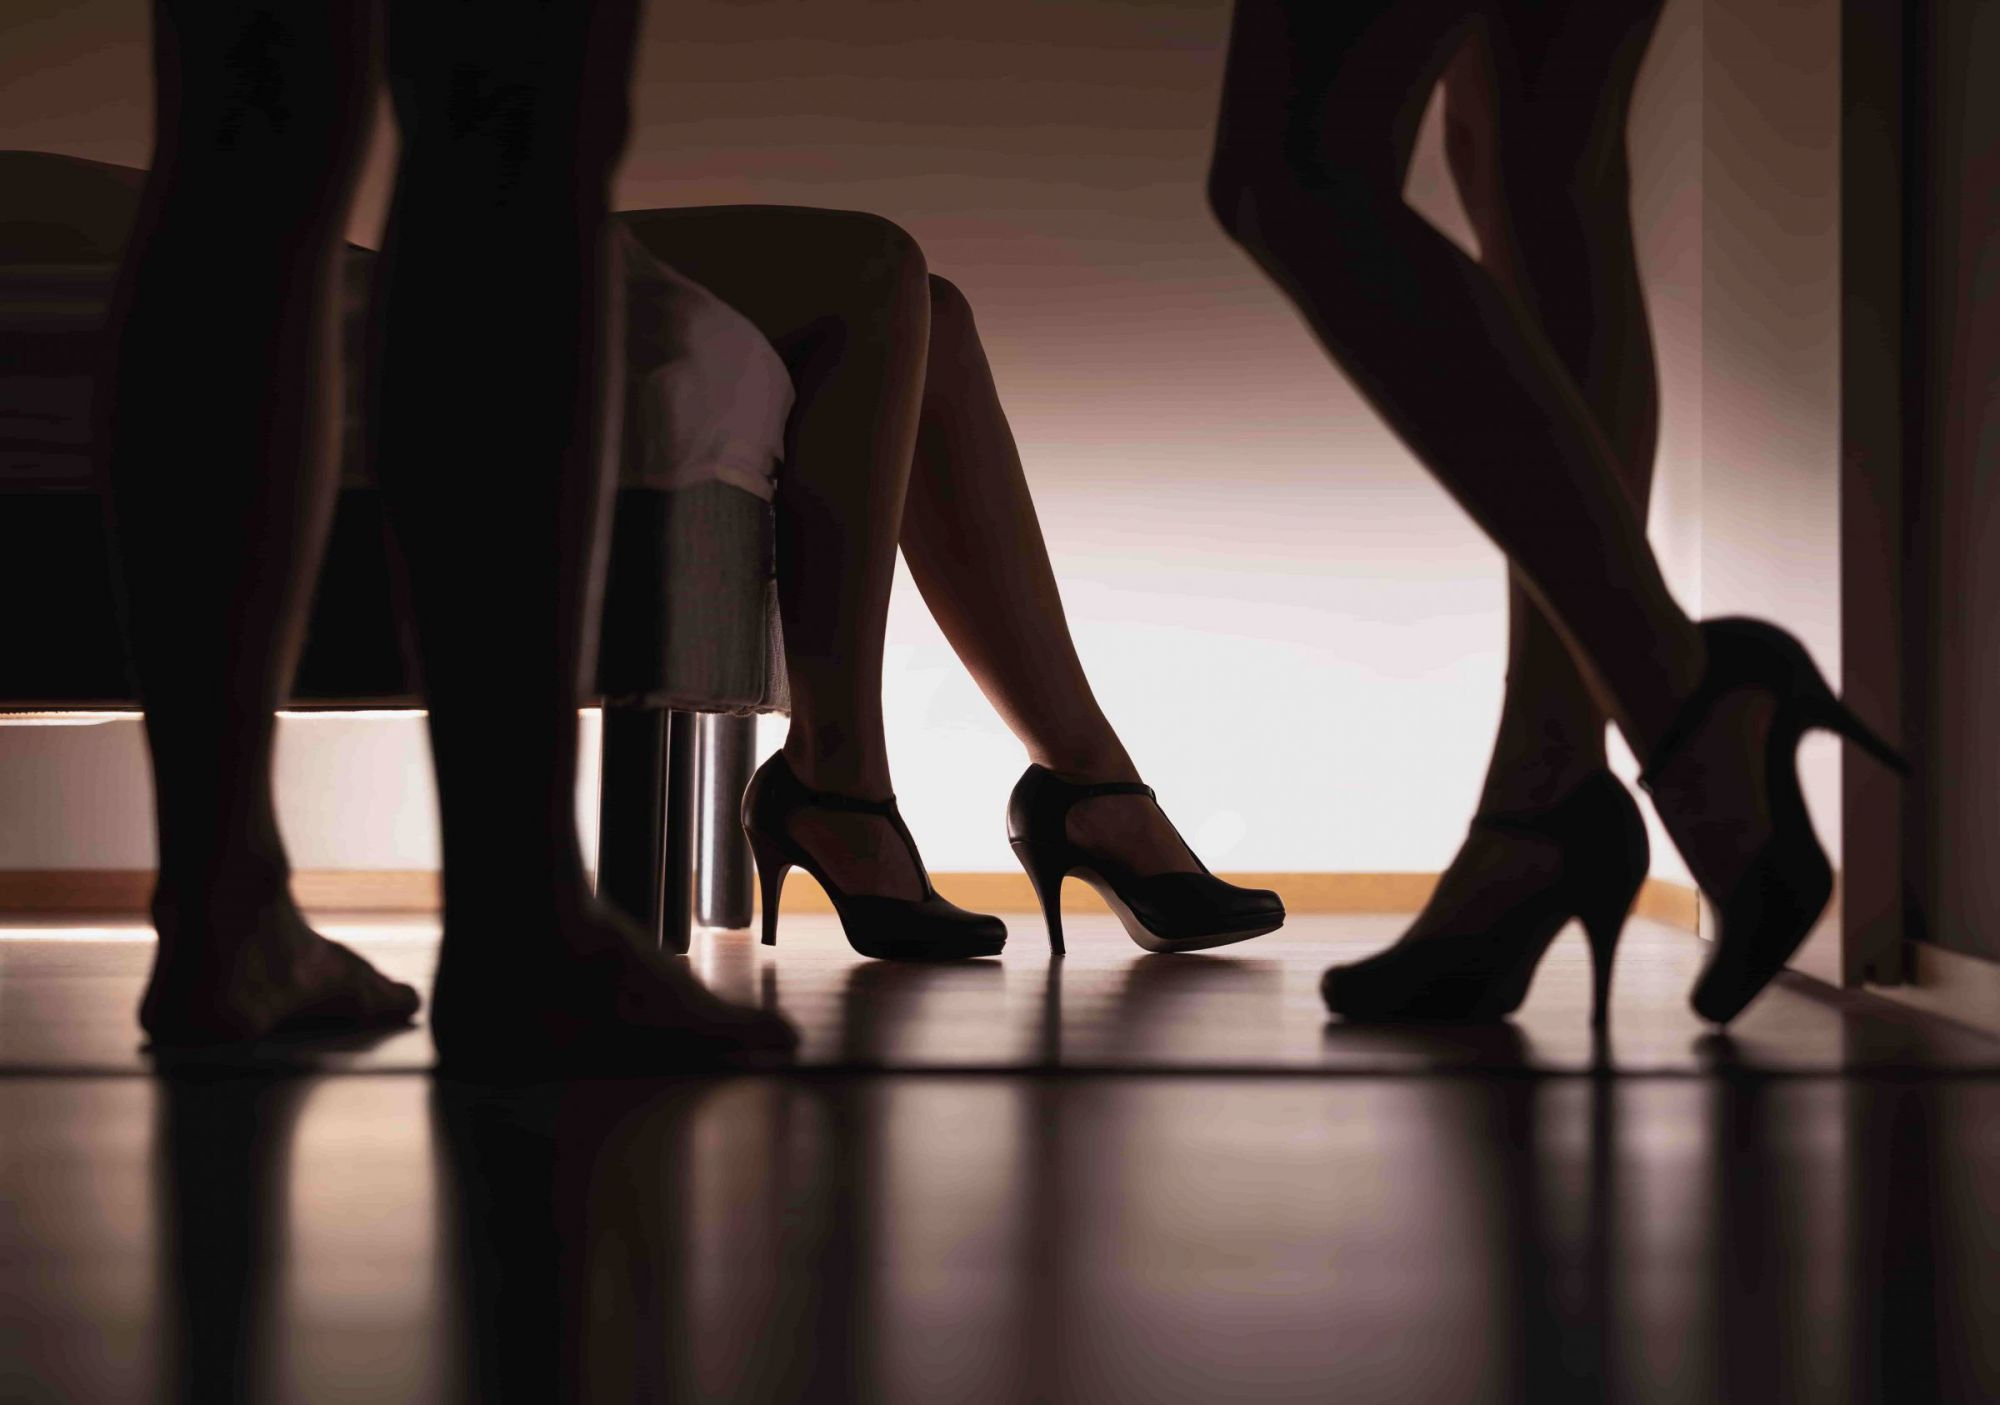 man and womens in heels legs by a bed